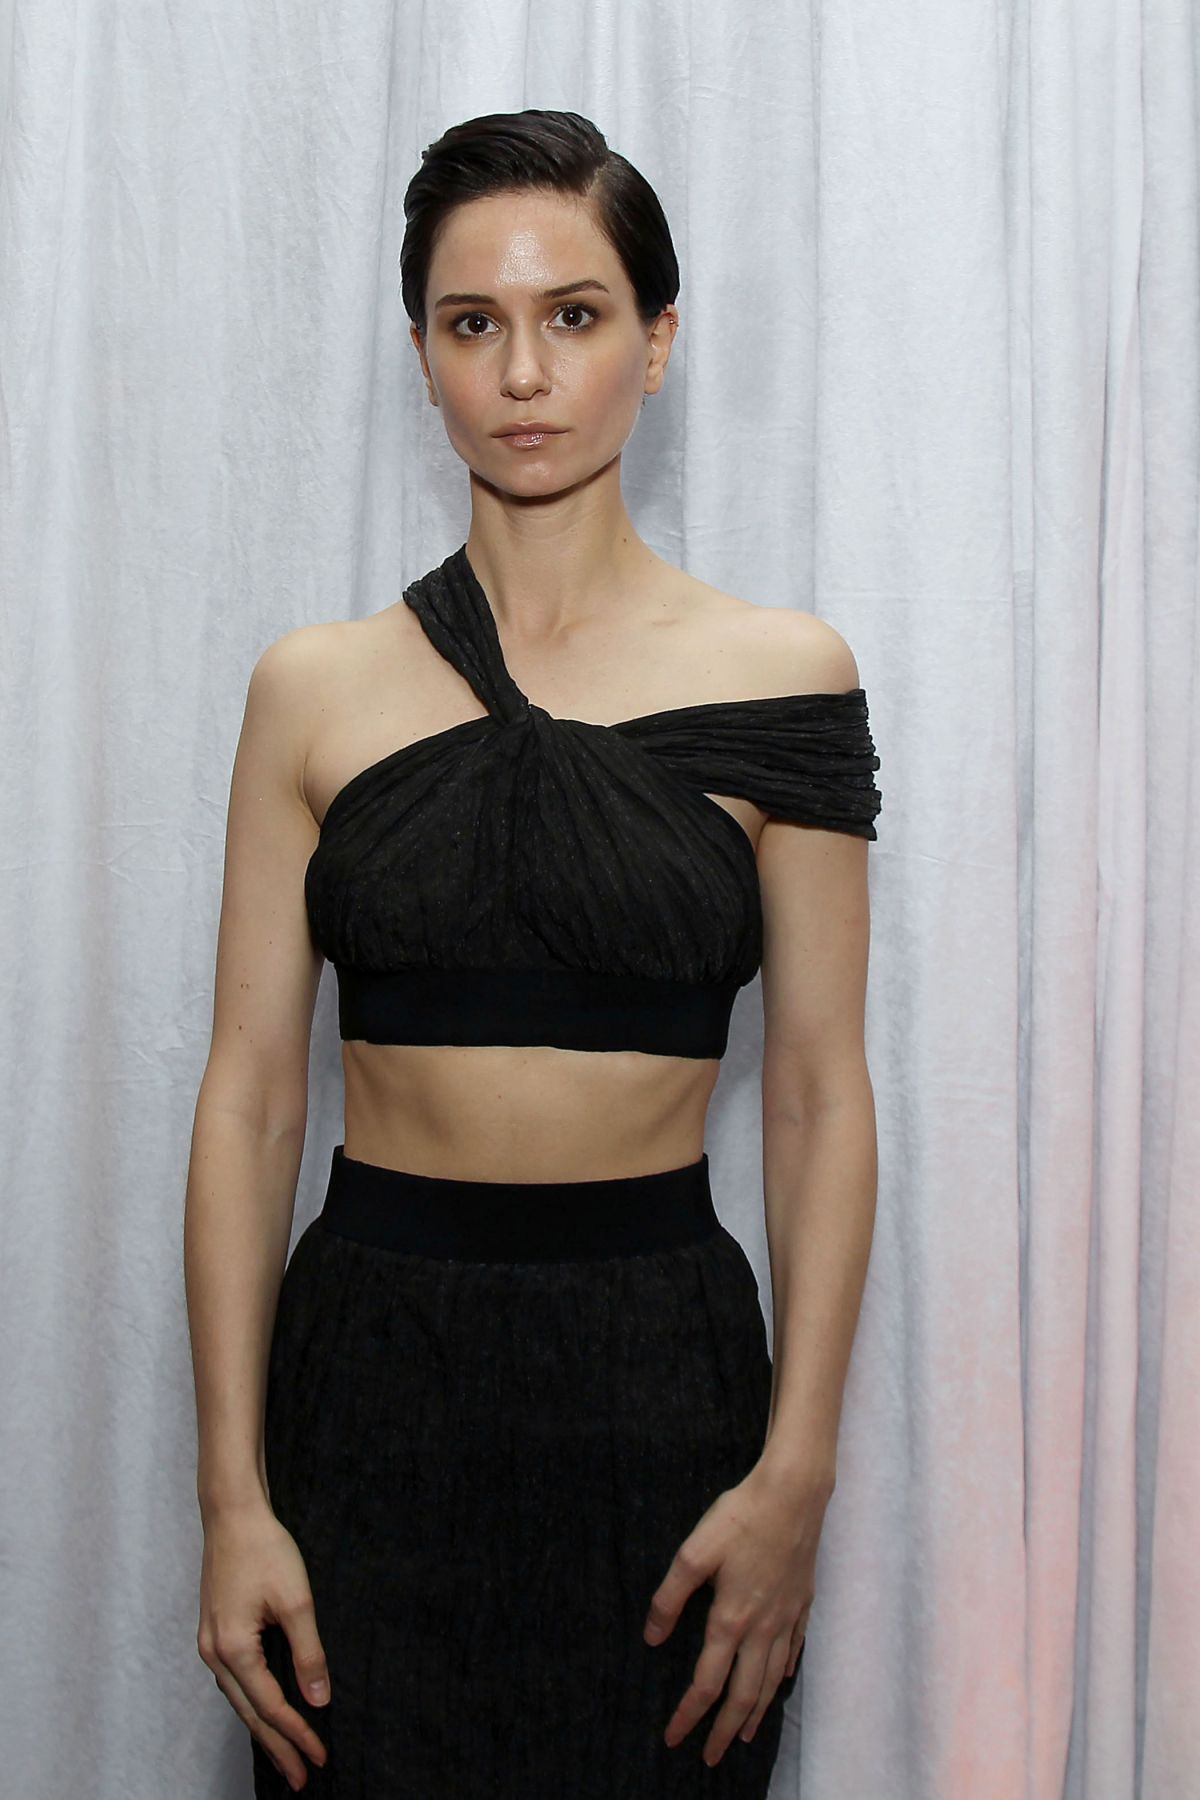 KATHERINE WATERSTON at 20th Century Fox New Year Presentation of